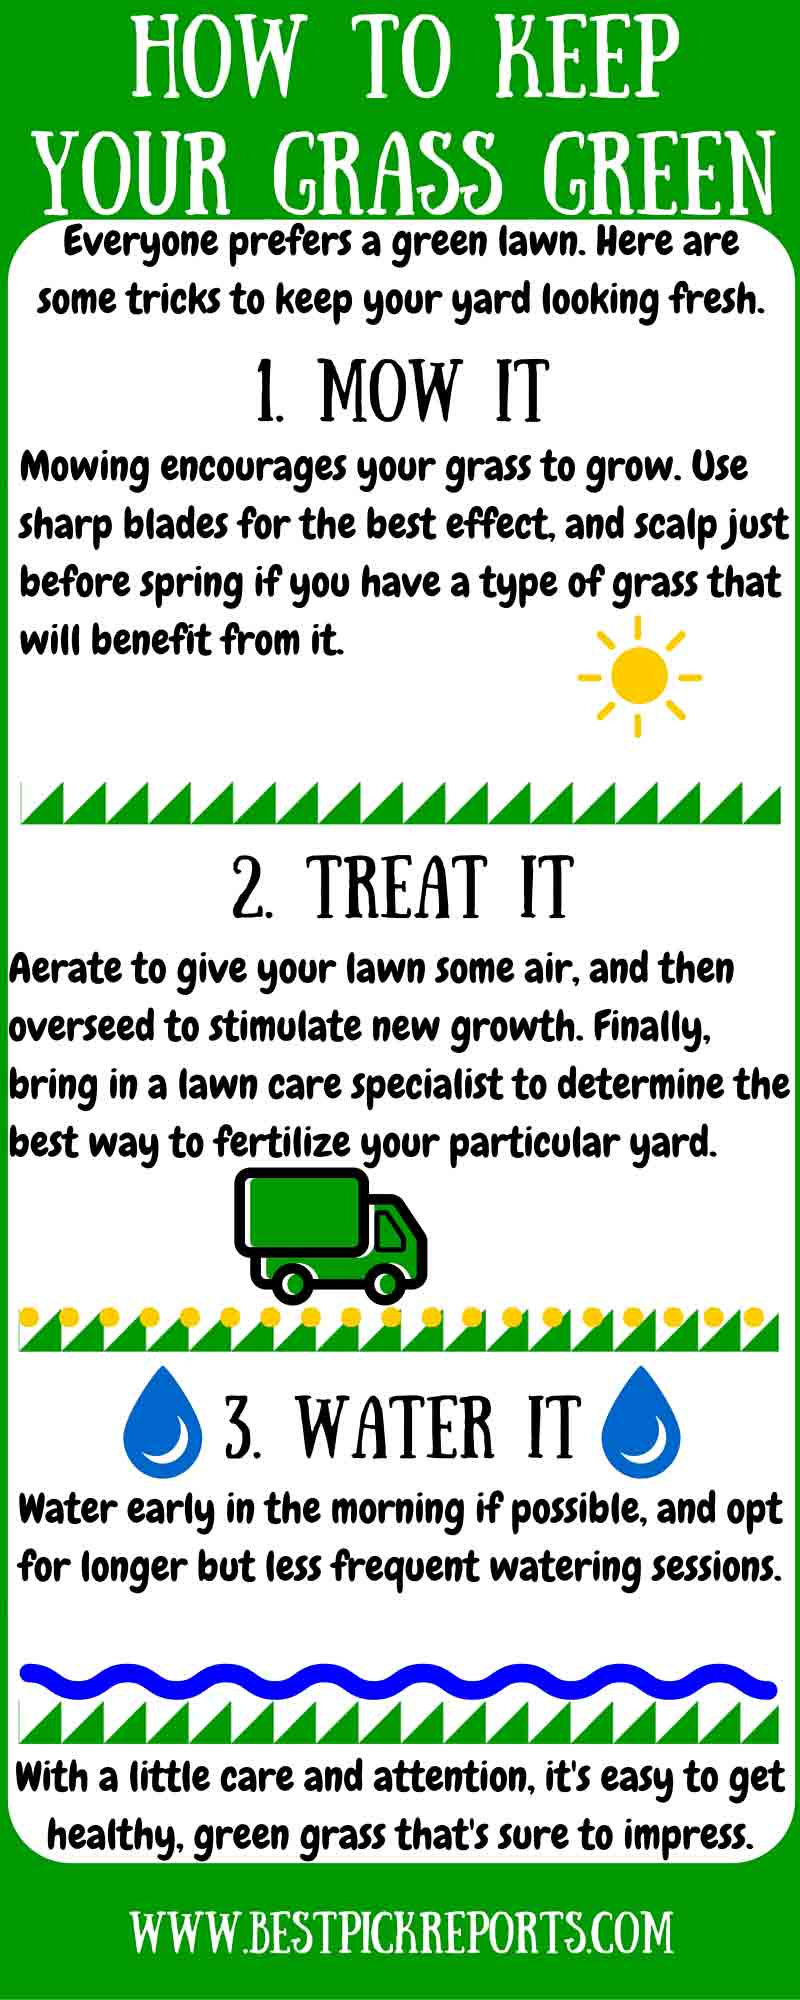 How to Keep Your Grass Green Infographic